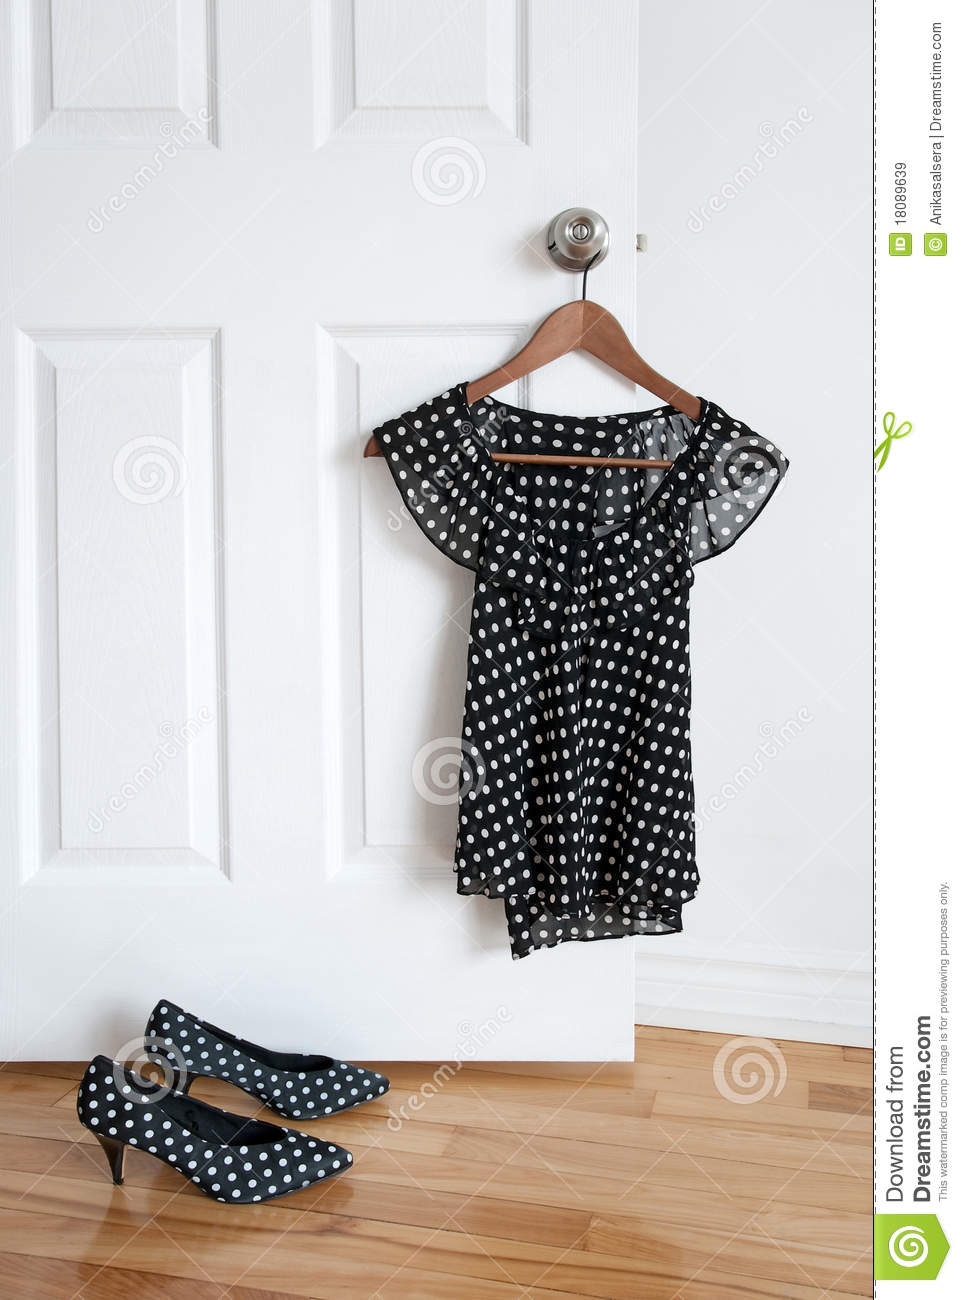 Polka Dot Shoes And Stylish Blouse On A Hanger Royalty